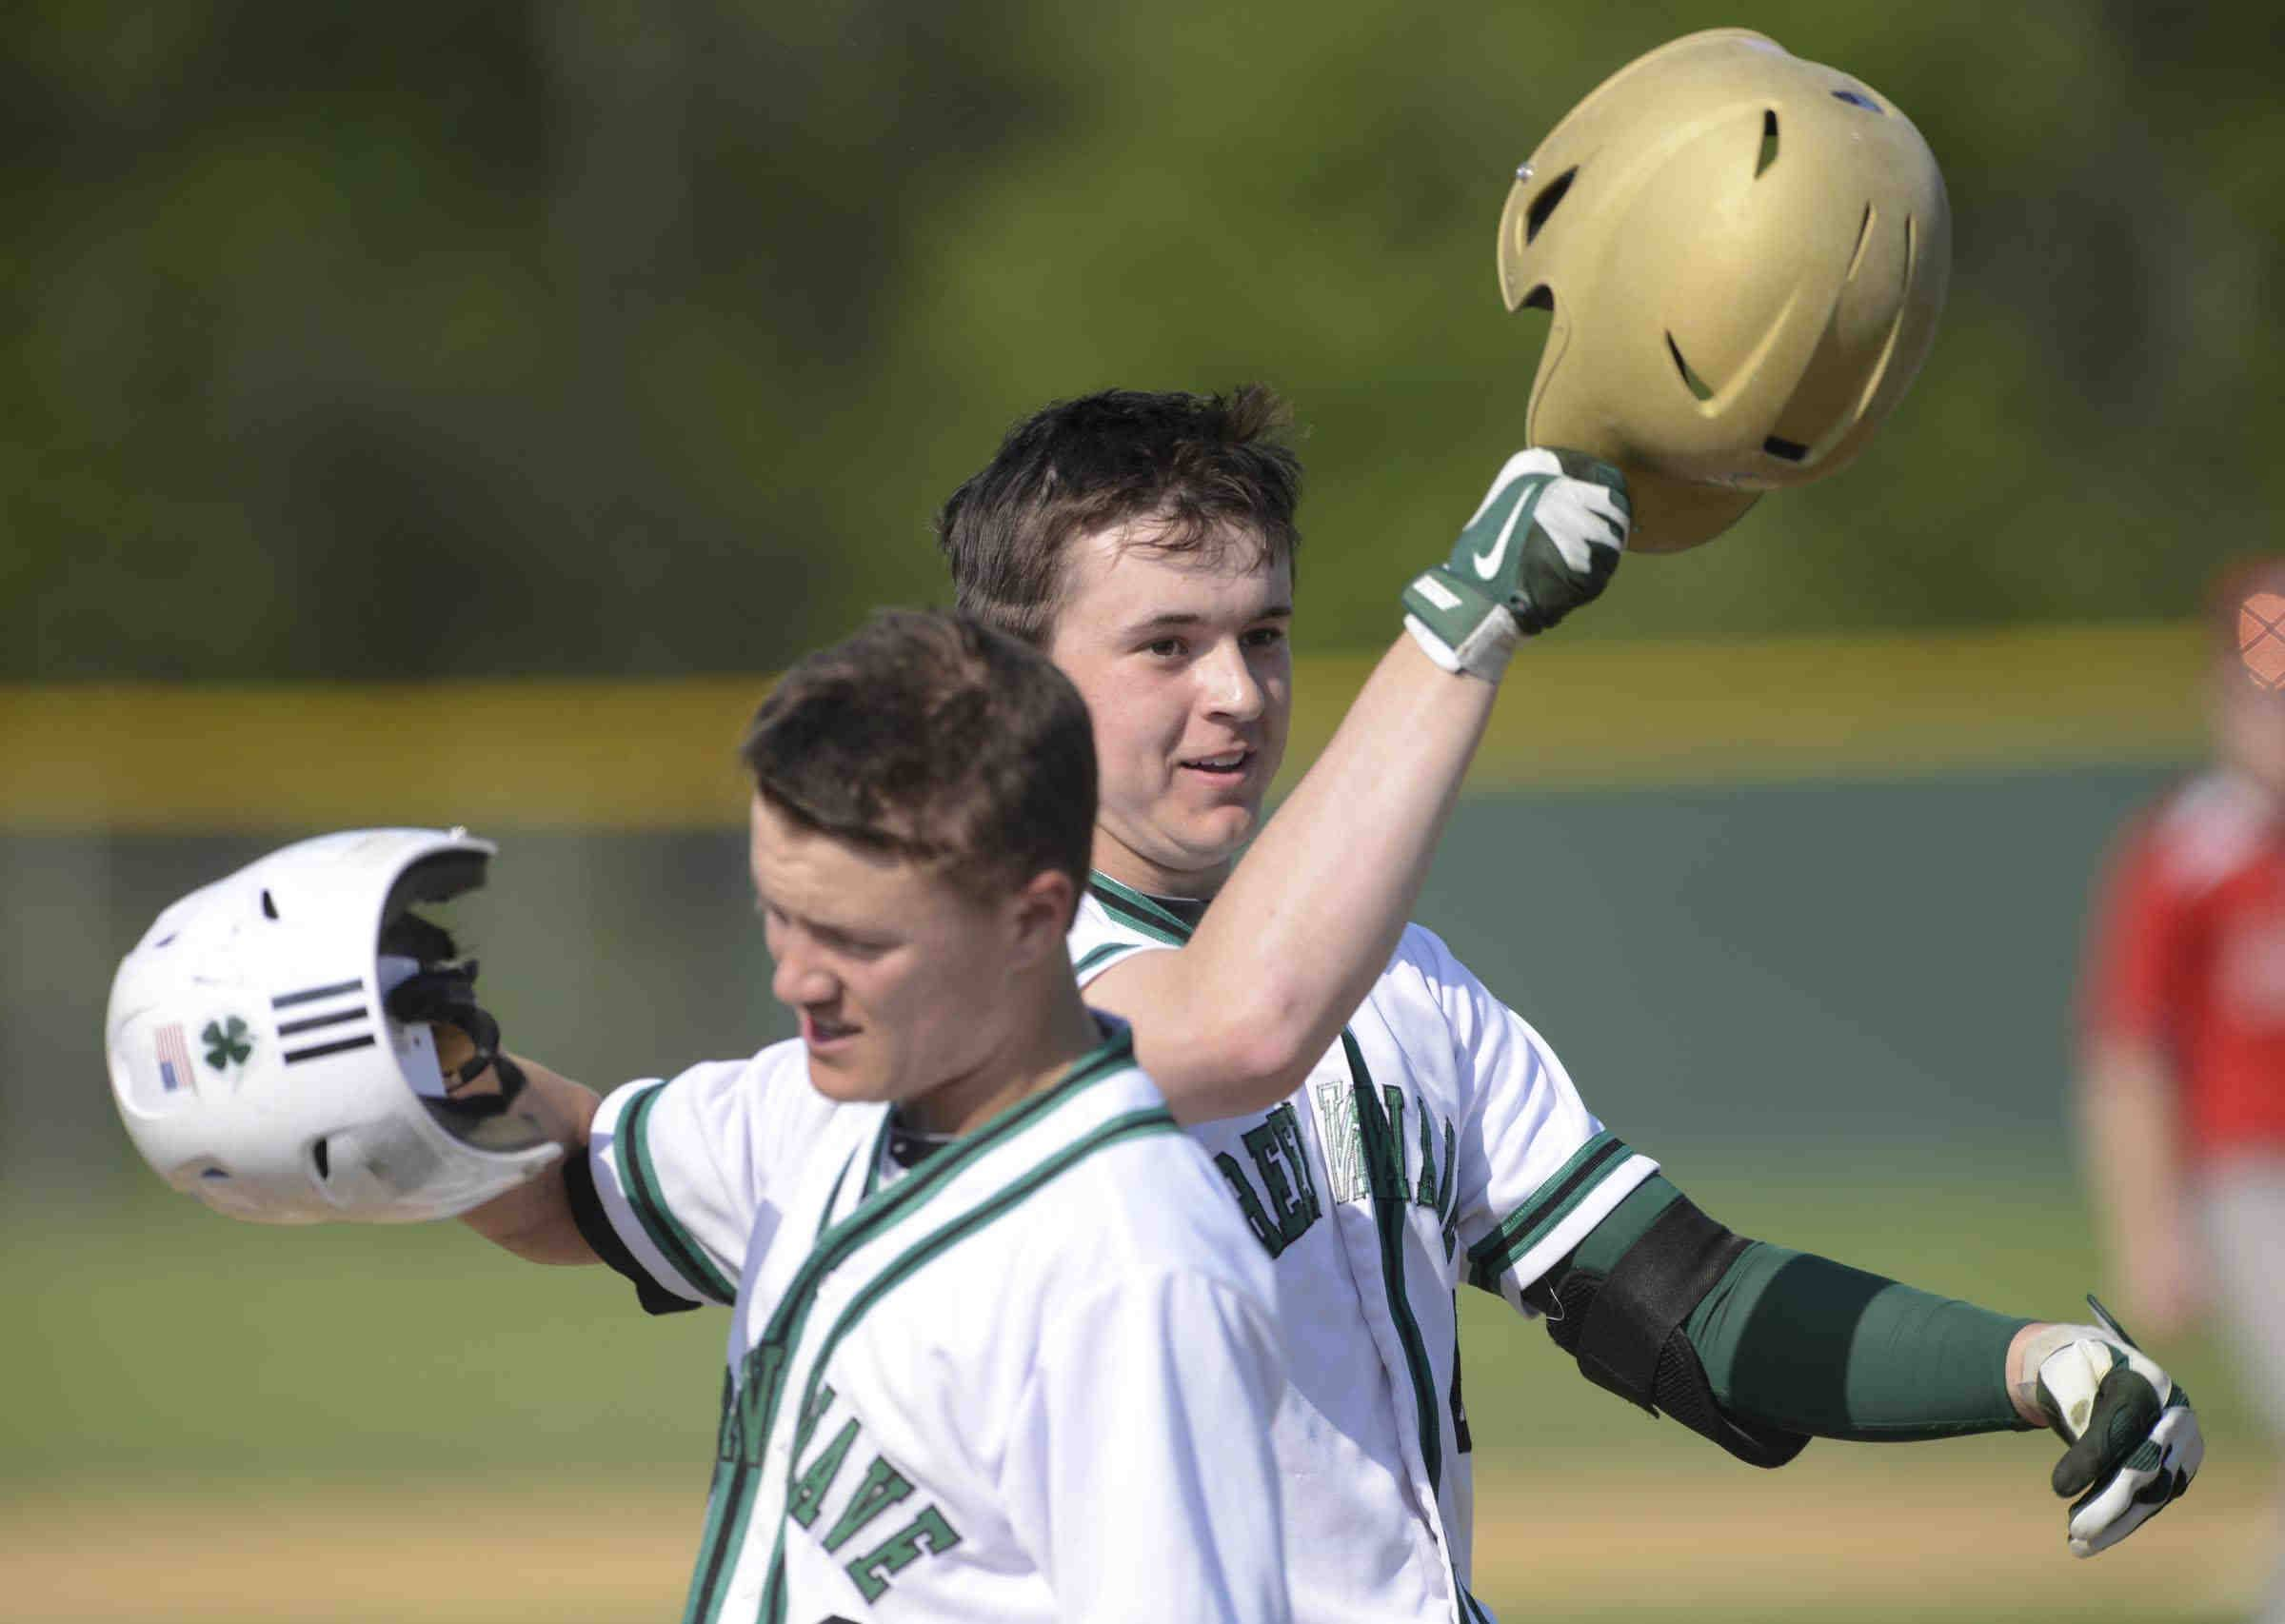 St. Edward's Jack Tierney taps his helmet with teammate Michael Castoro during a regional game against Aurora Christian last year.